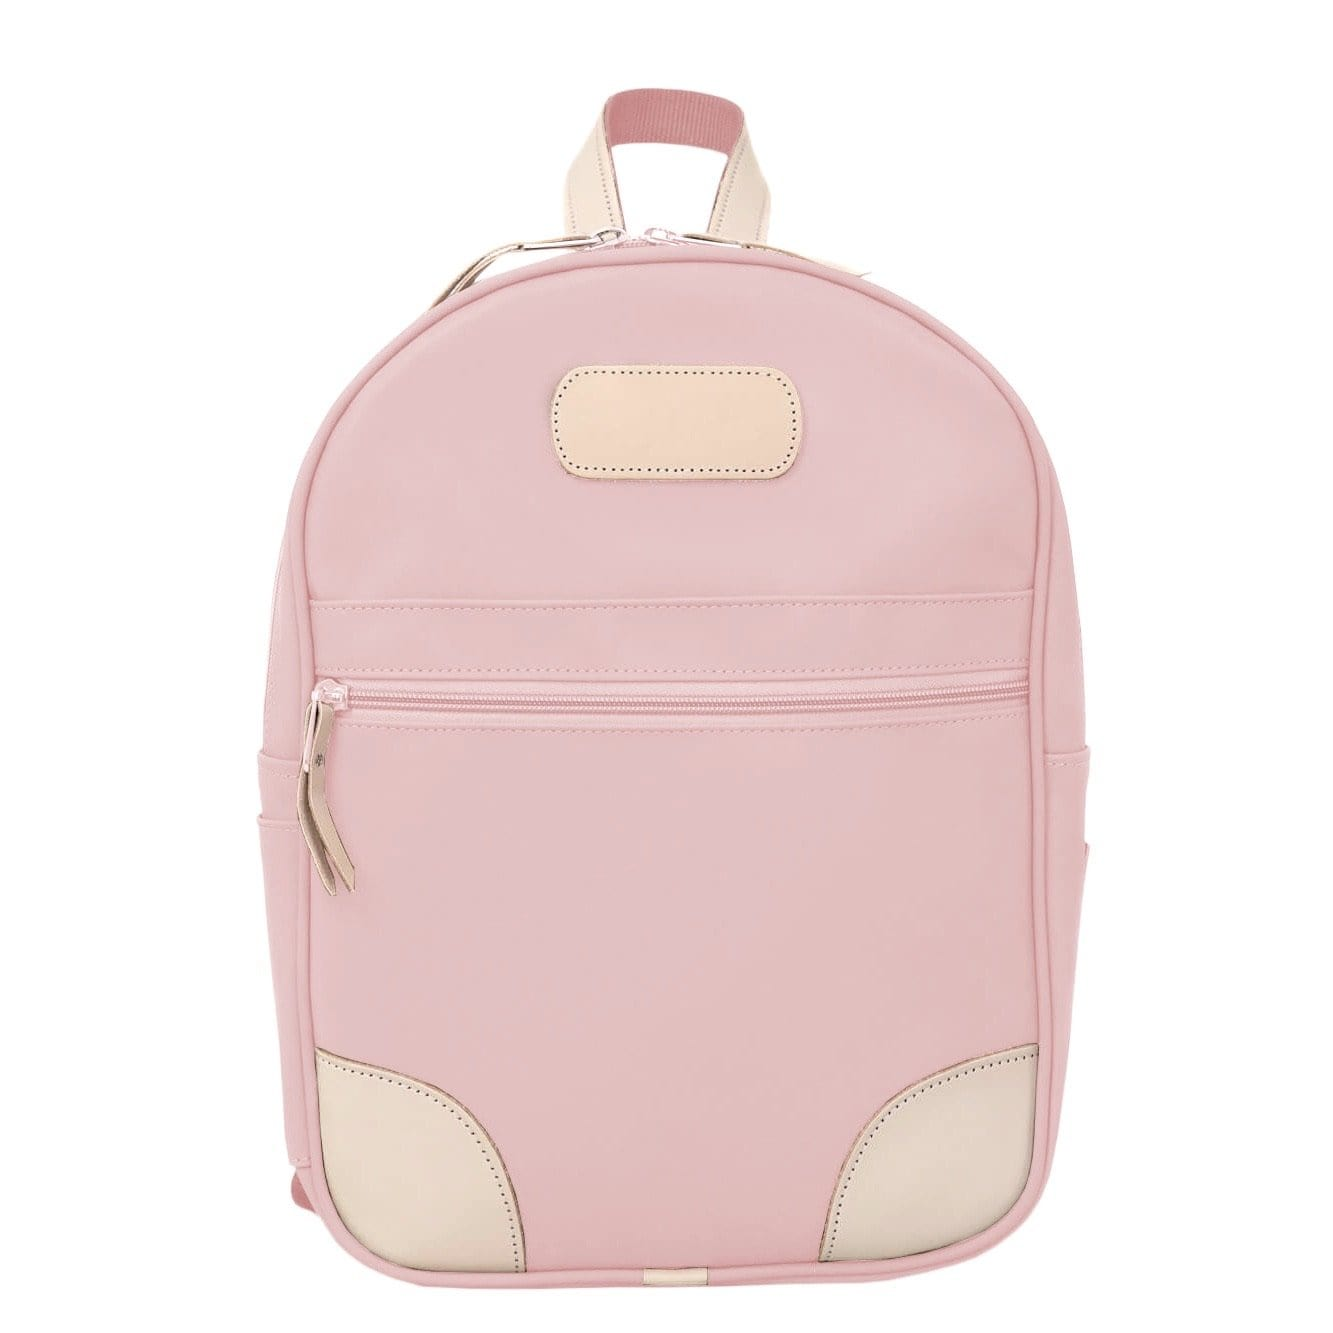 Jon Hart Backpack - Brave Boutique